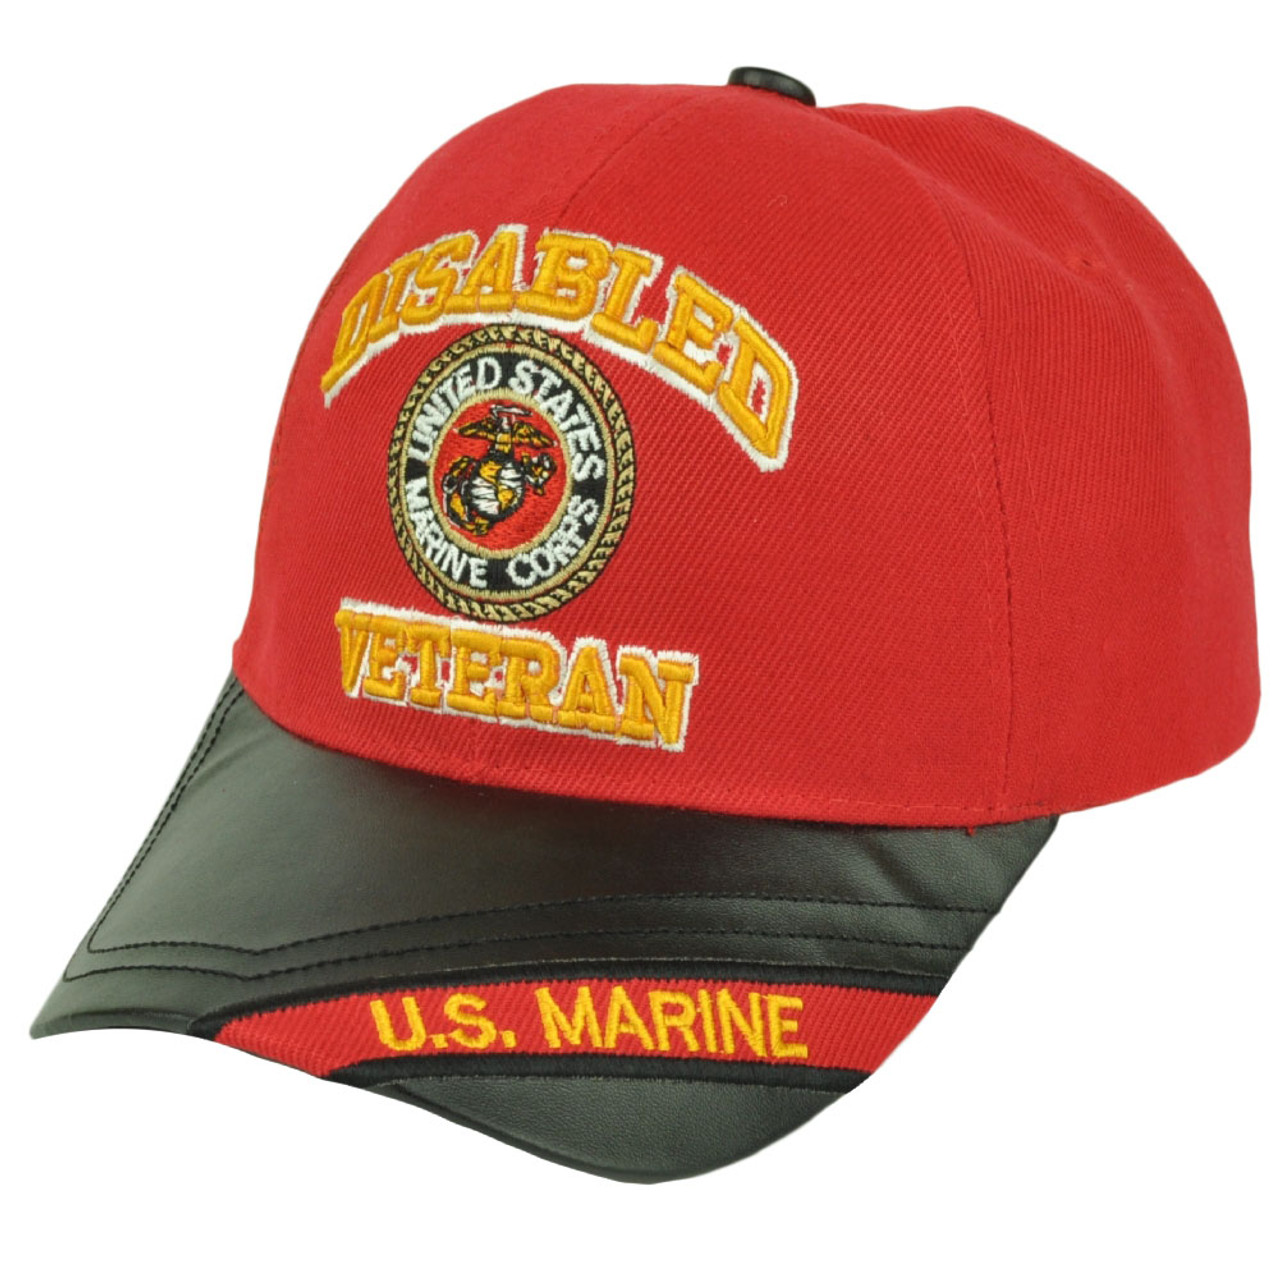 9e434c134edfd Disabled Veteran United States Marine Corps Red Pleather Visor Hat Cap  Military - Cap Store Online.com